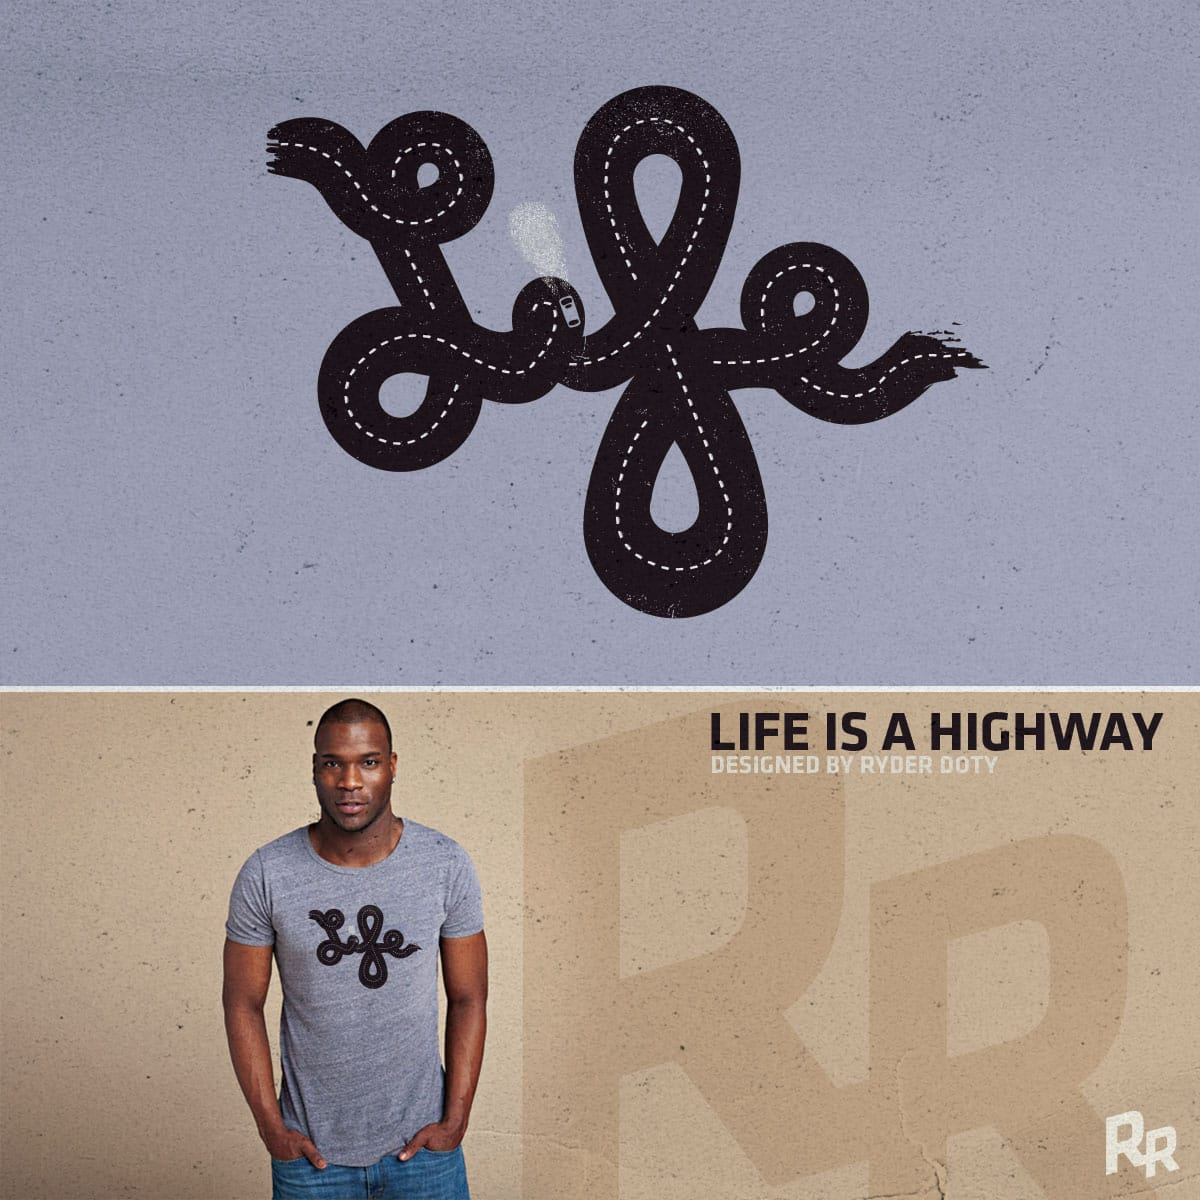 Life is a Highway by Ryder on Threadless